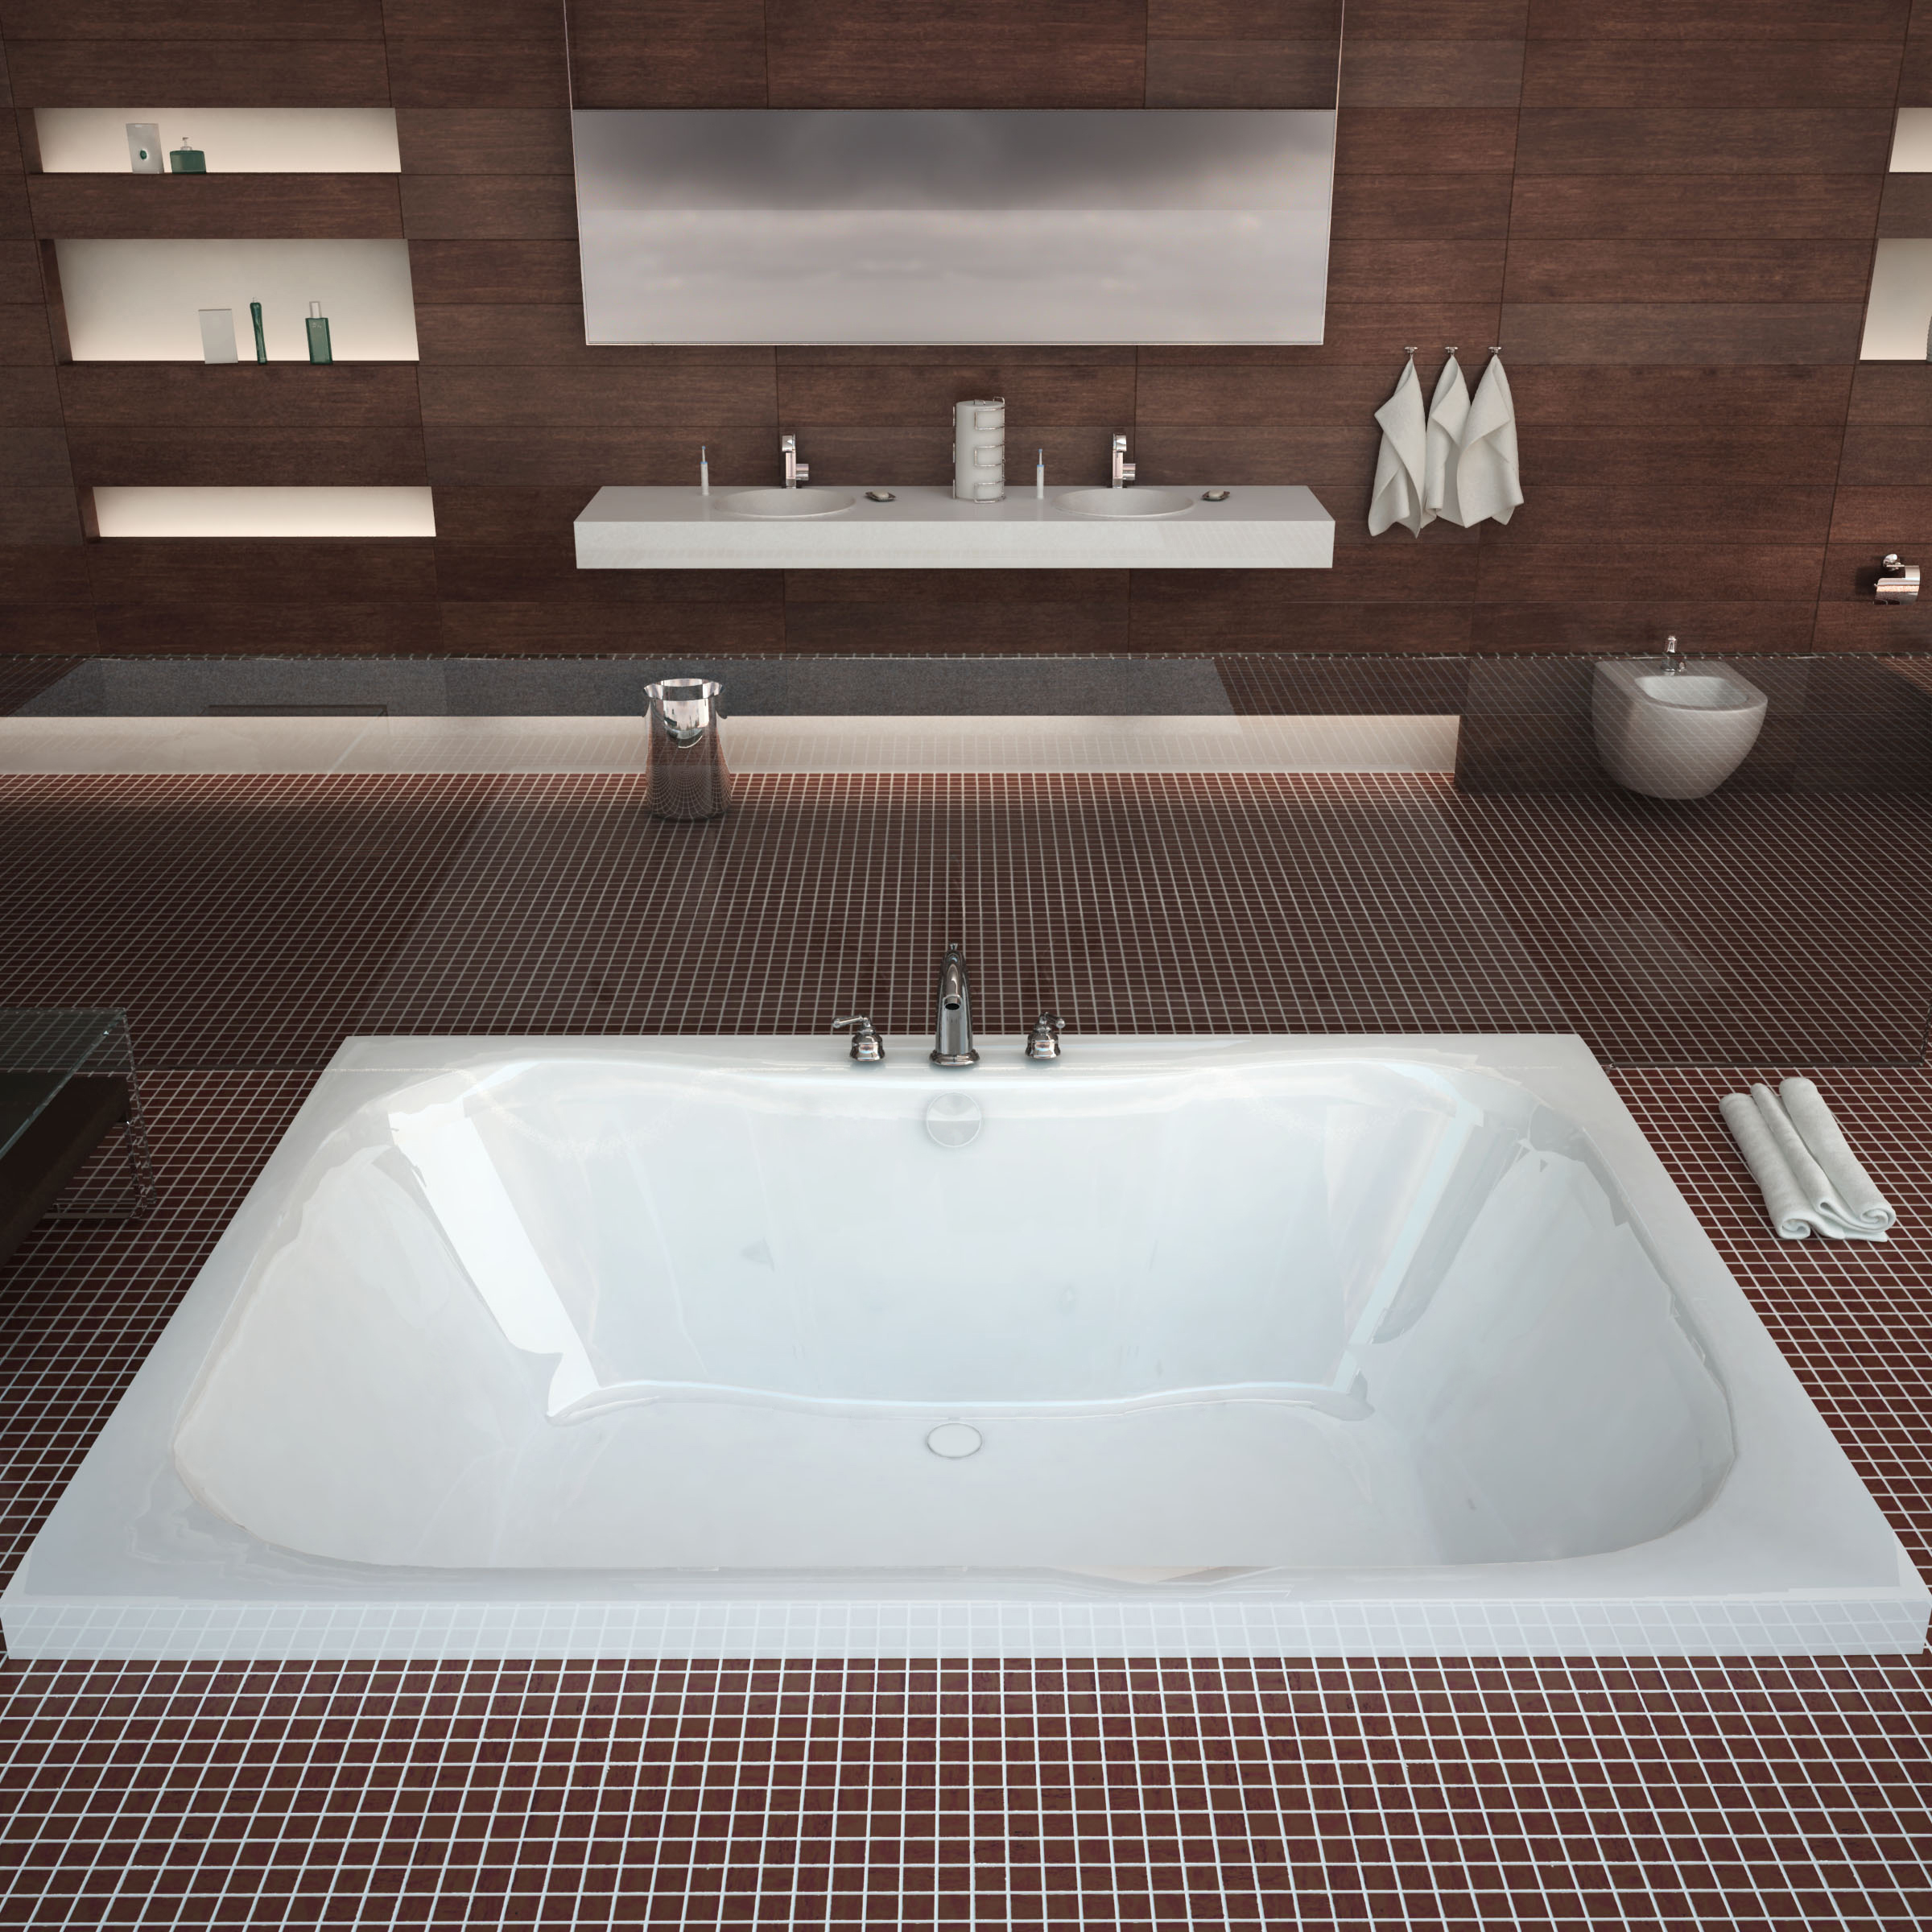 Venzi Flora 60 x 48 Rectangular Bathtub with Center Drain